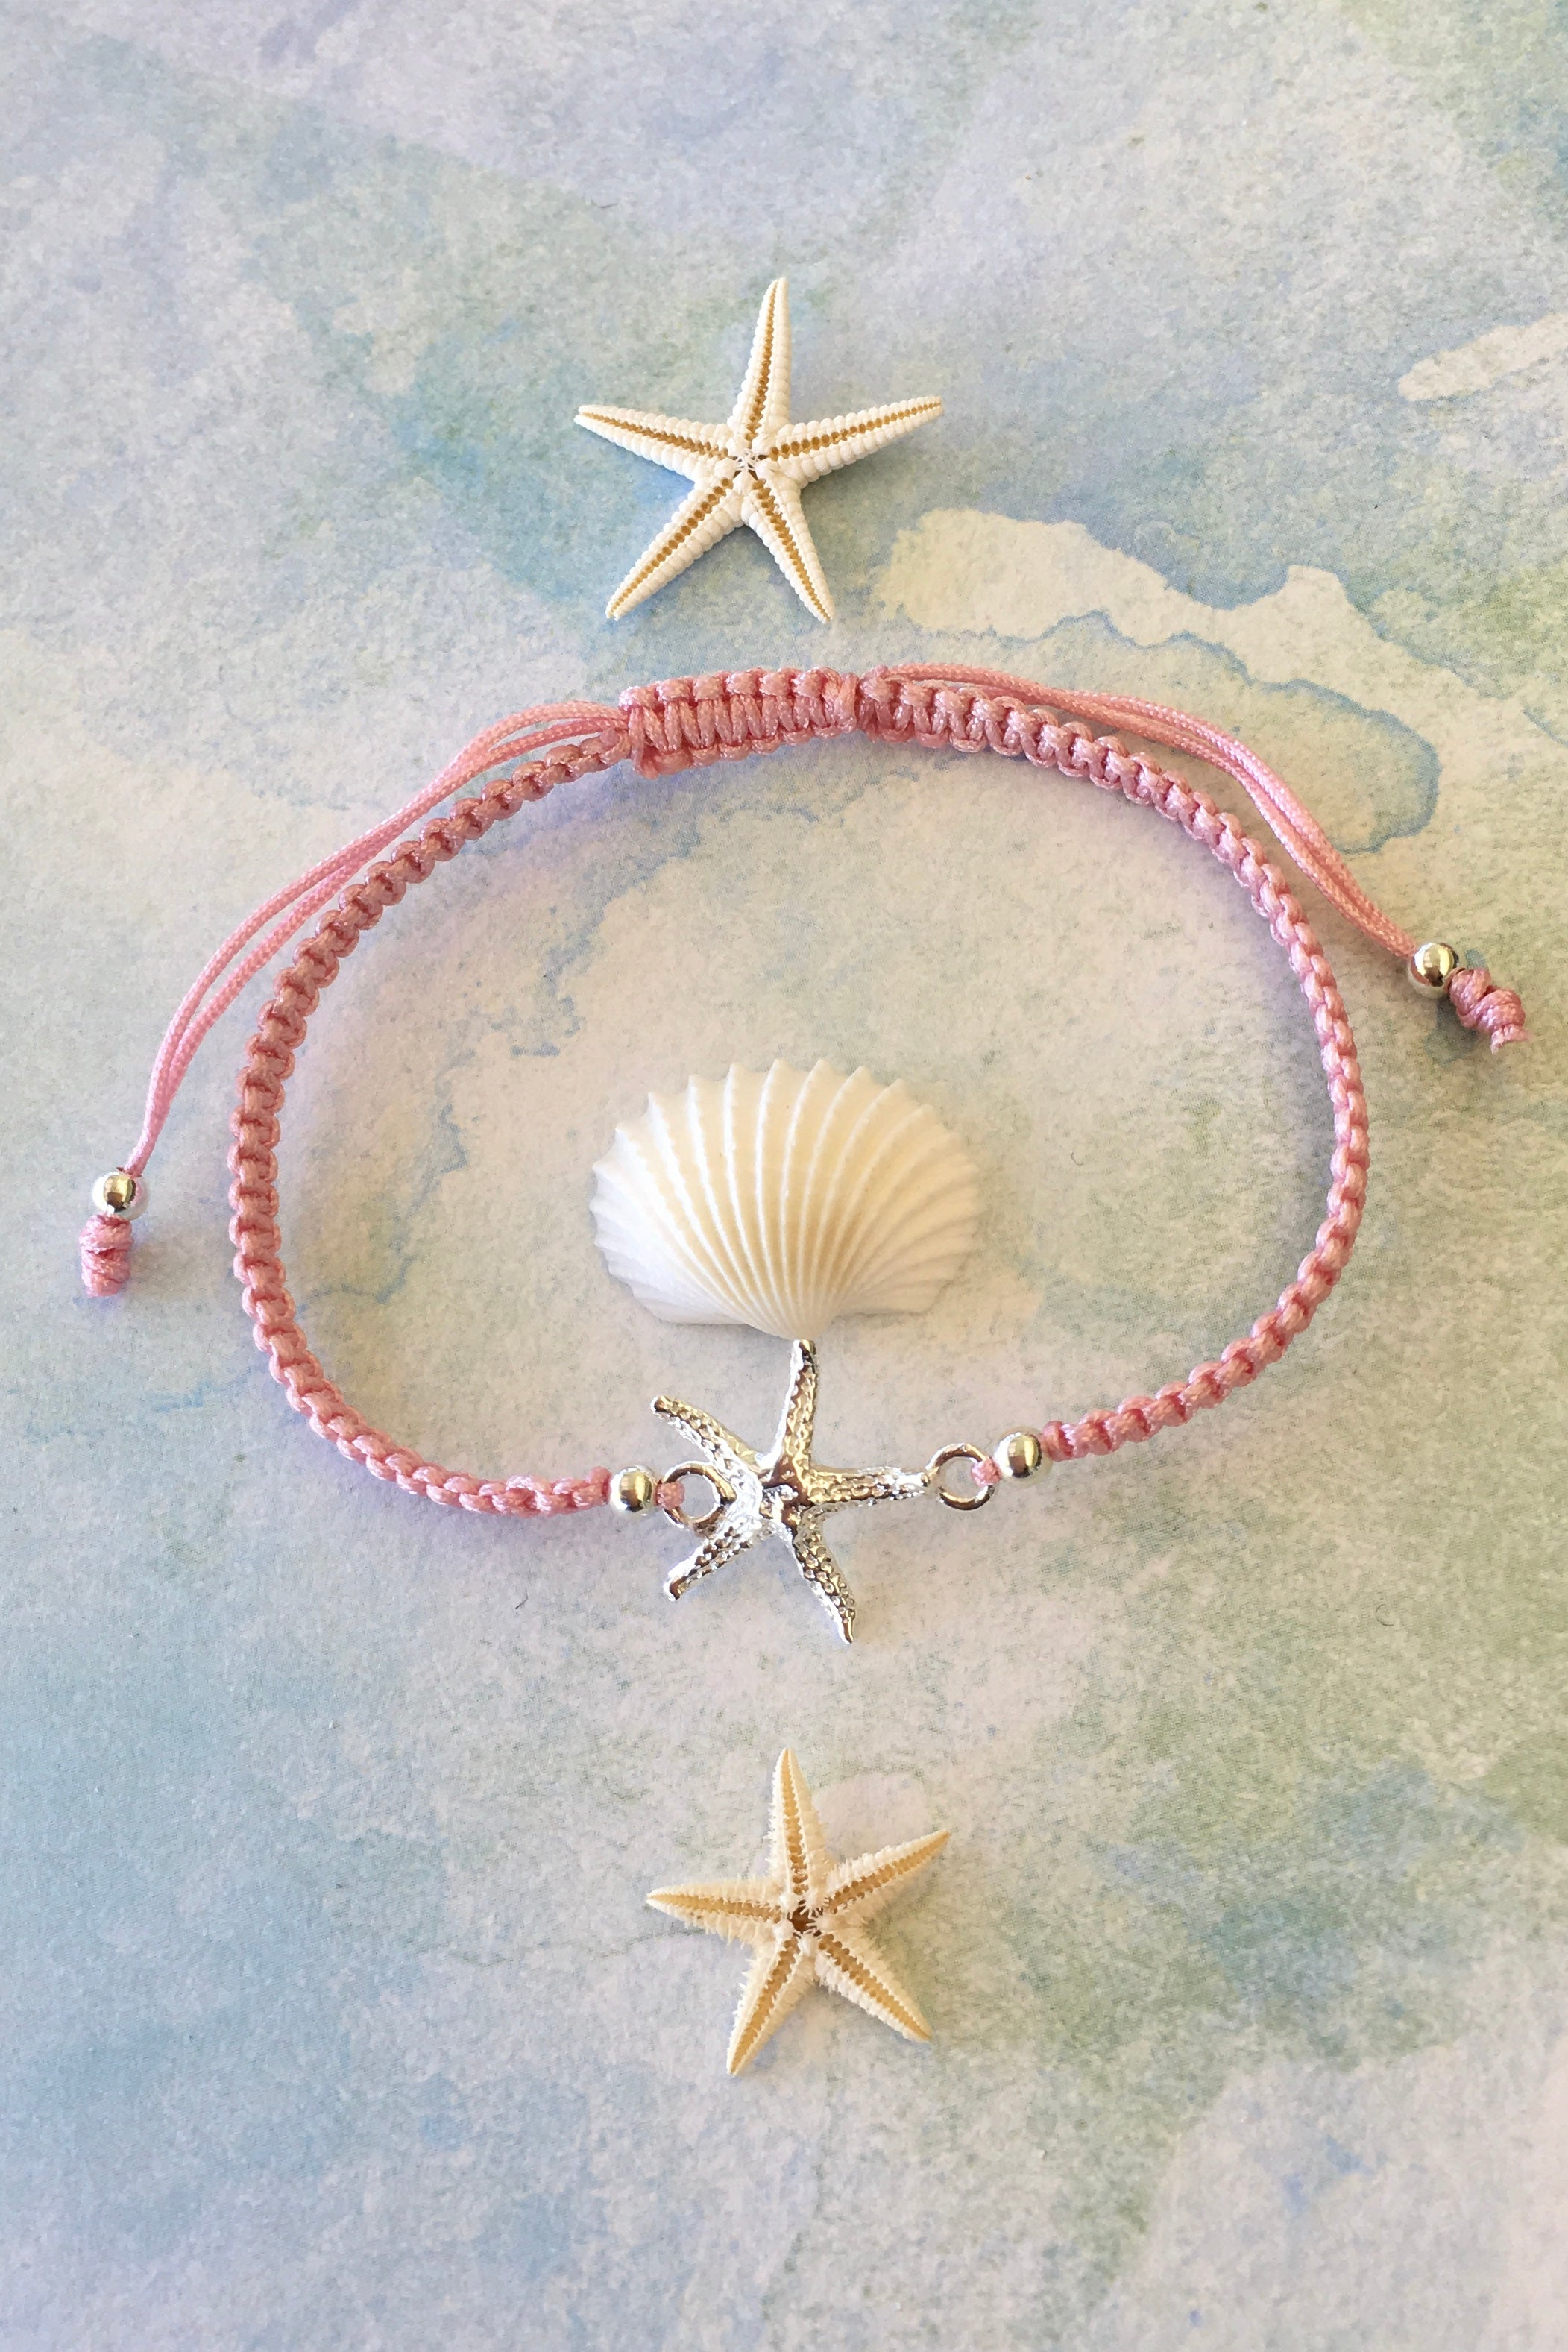 Bracelet Starfish Friendship in 925 Silver, adjustable friendship bracelet with silver starfish detail